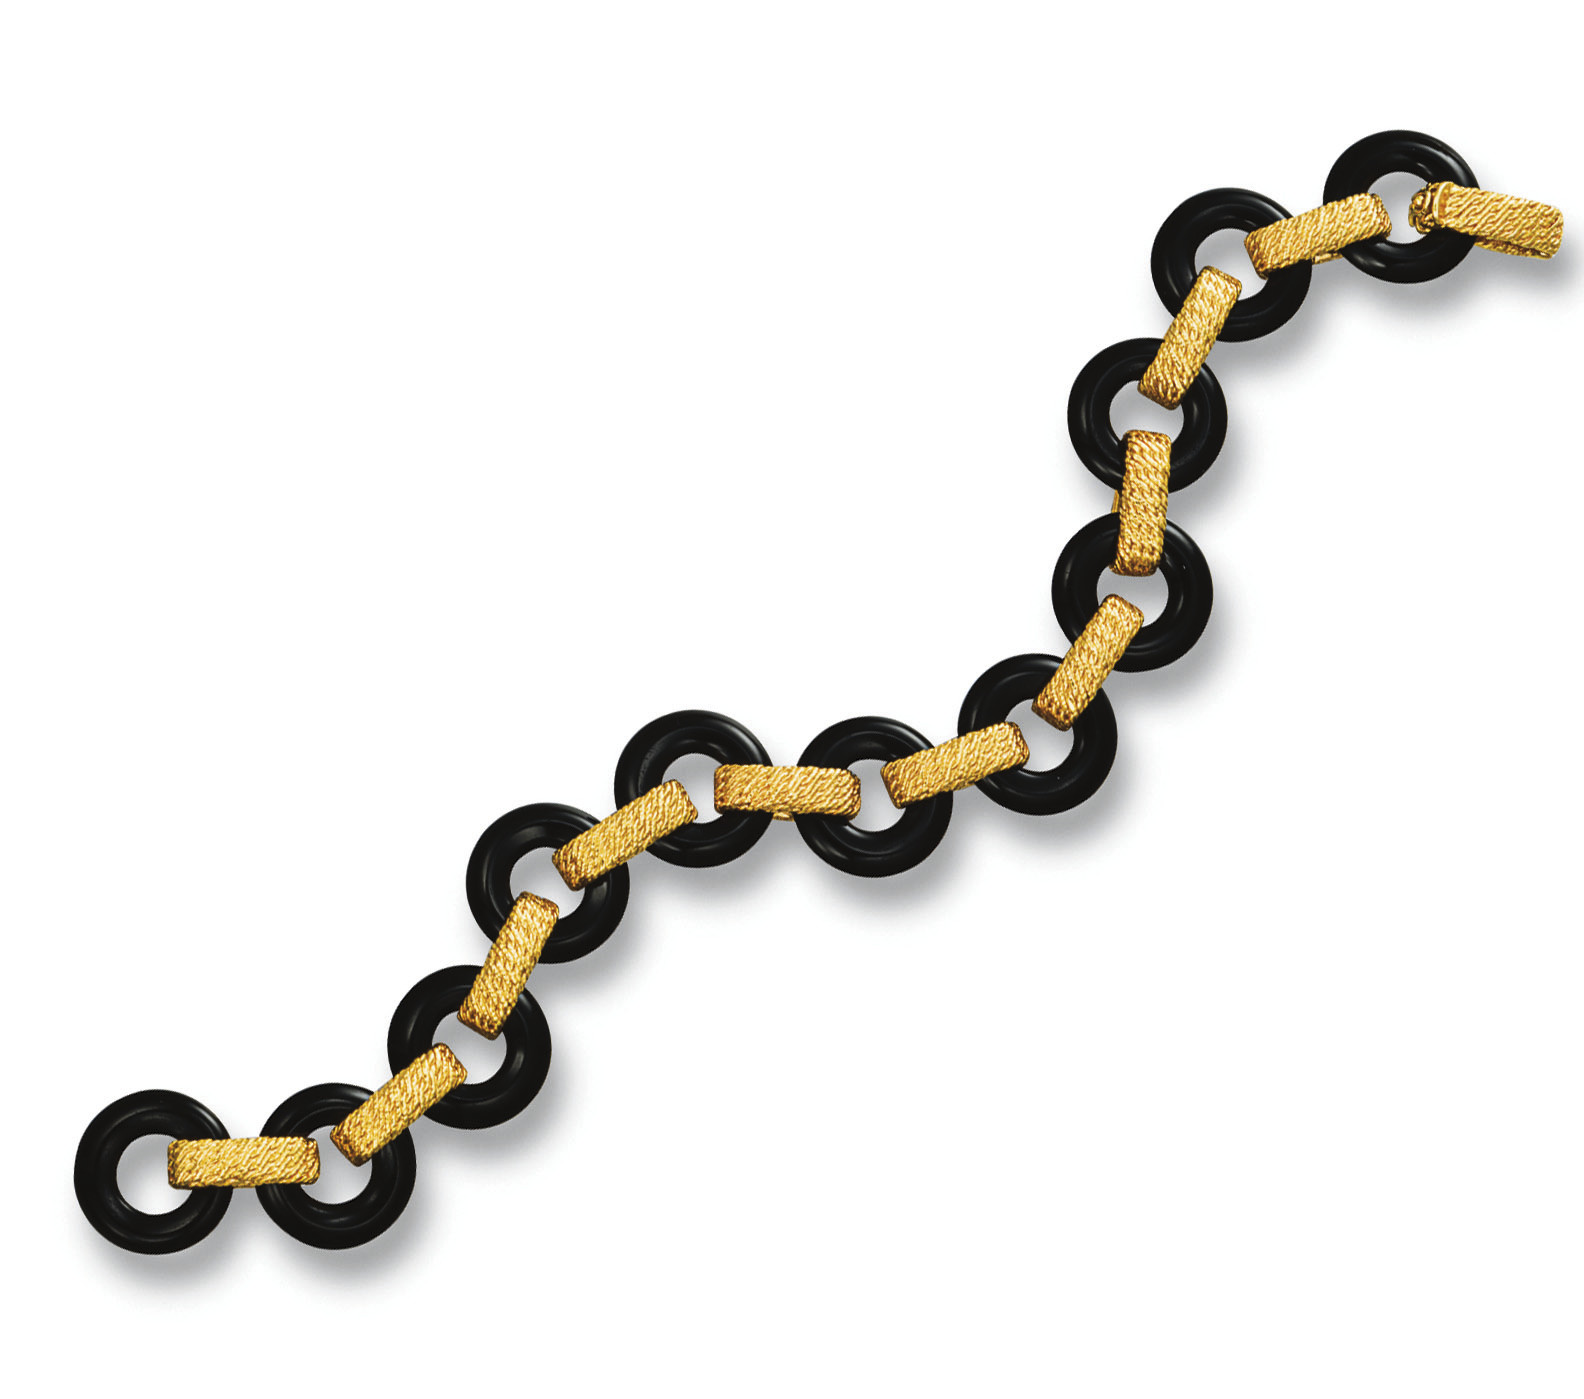 AN ONYX AND GOLD BRACELET, BY